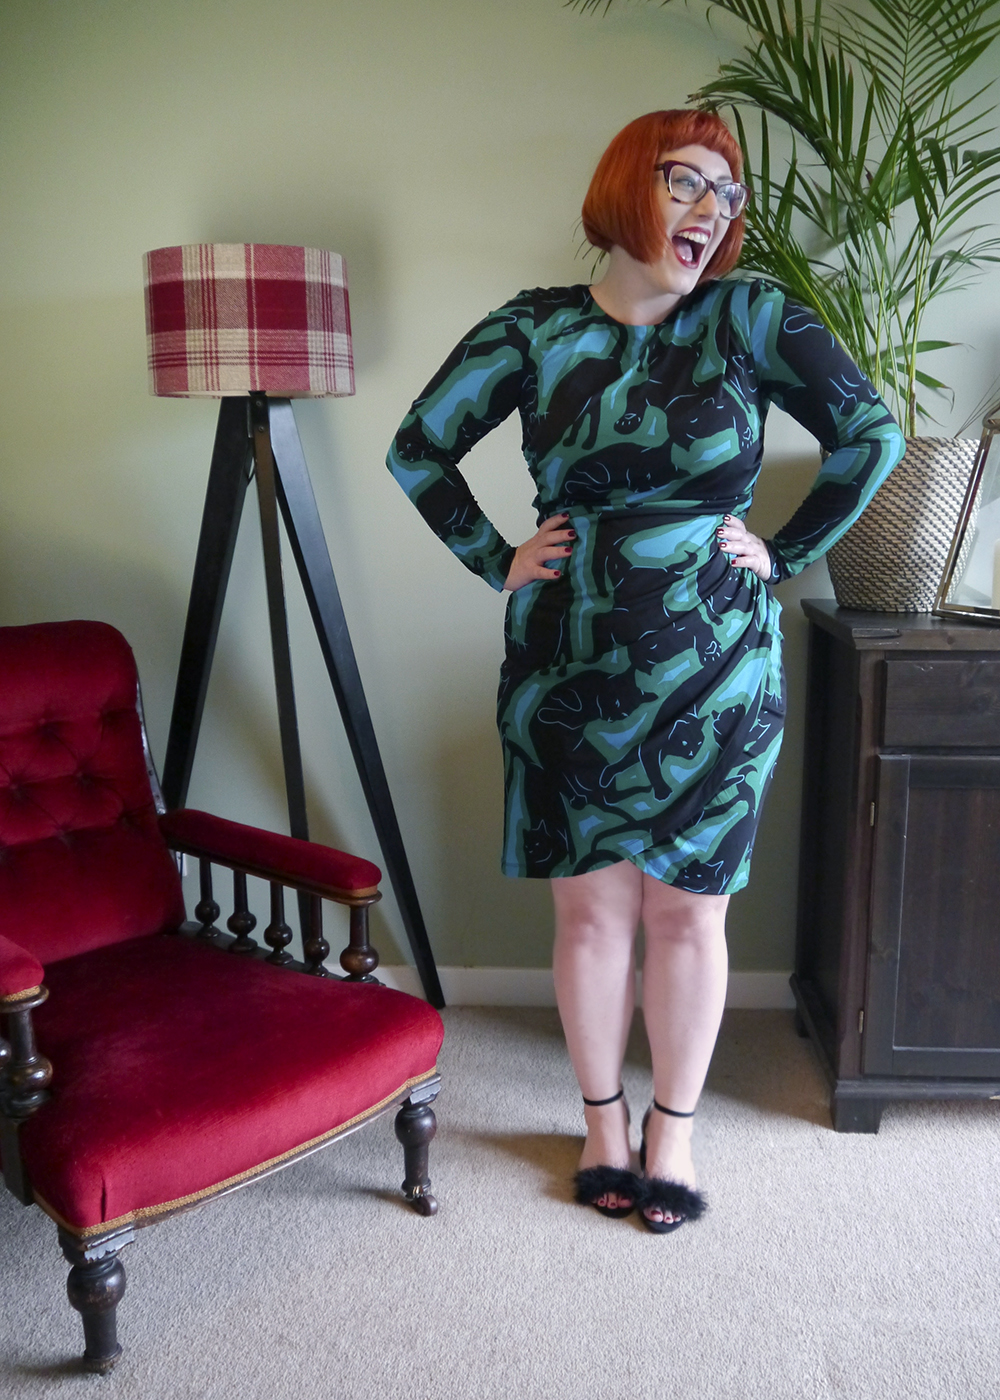 UK fashion blogger Helen from Wardrobe Conversations wear an Issa cat print dress and fluffy shoes for the Friday night of Edinburgh Cocktail Weekend